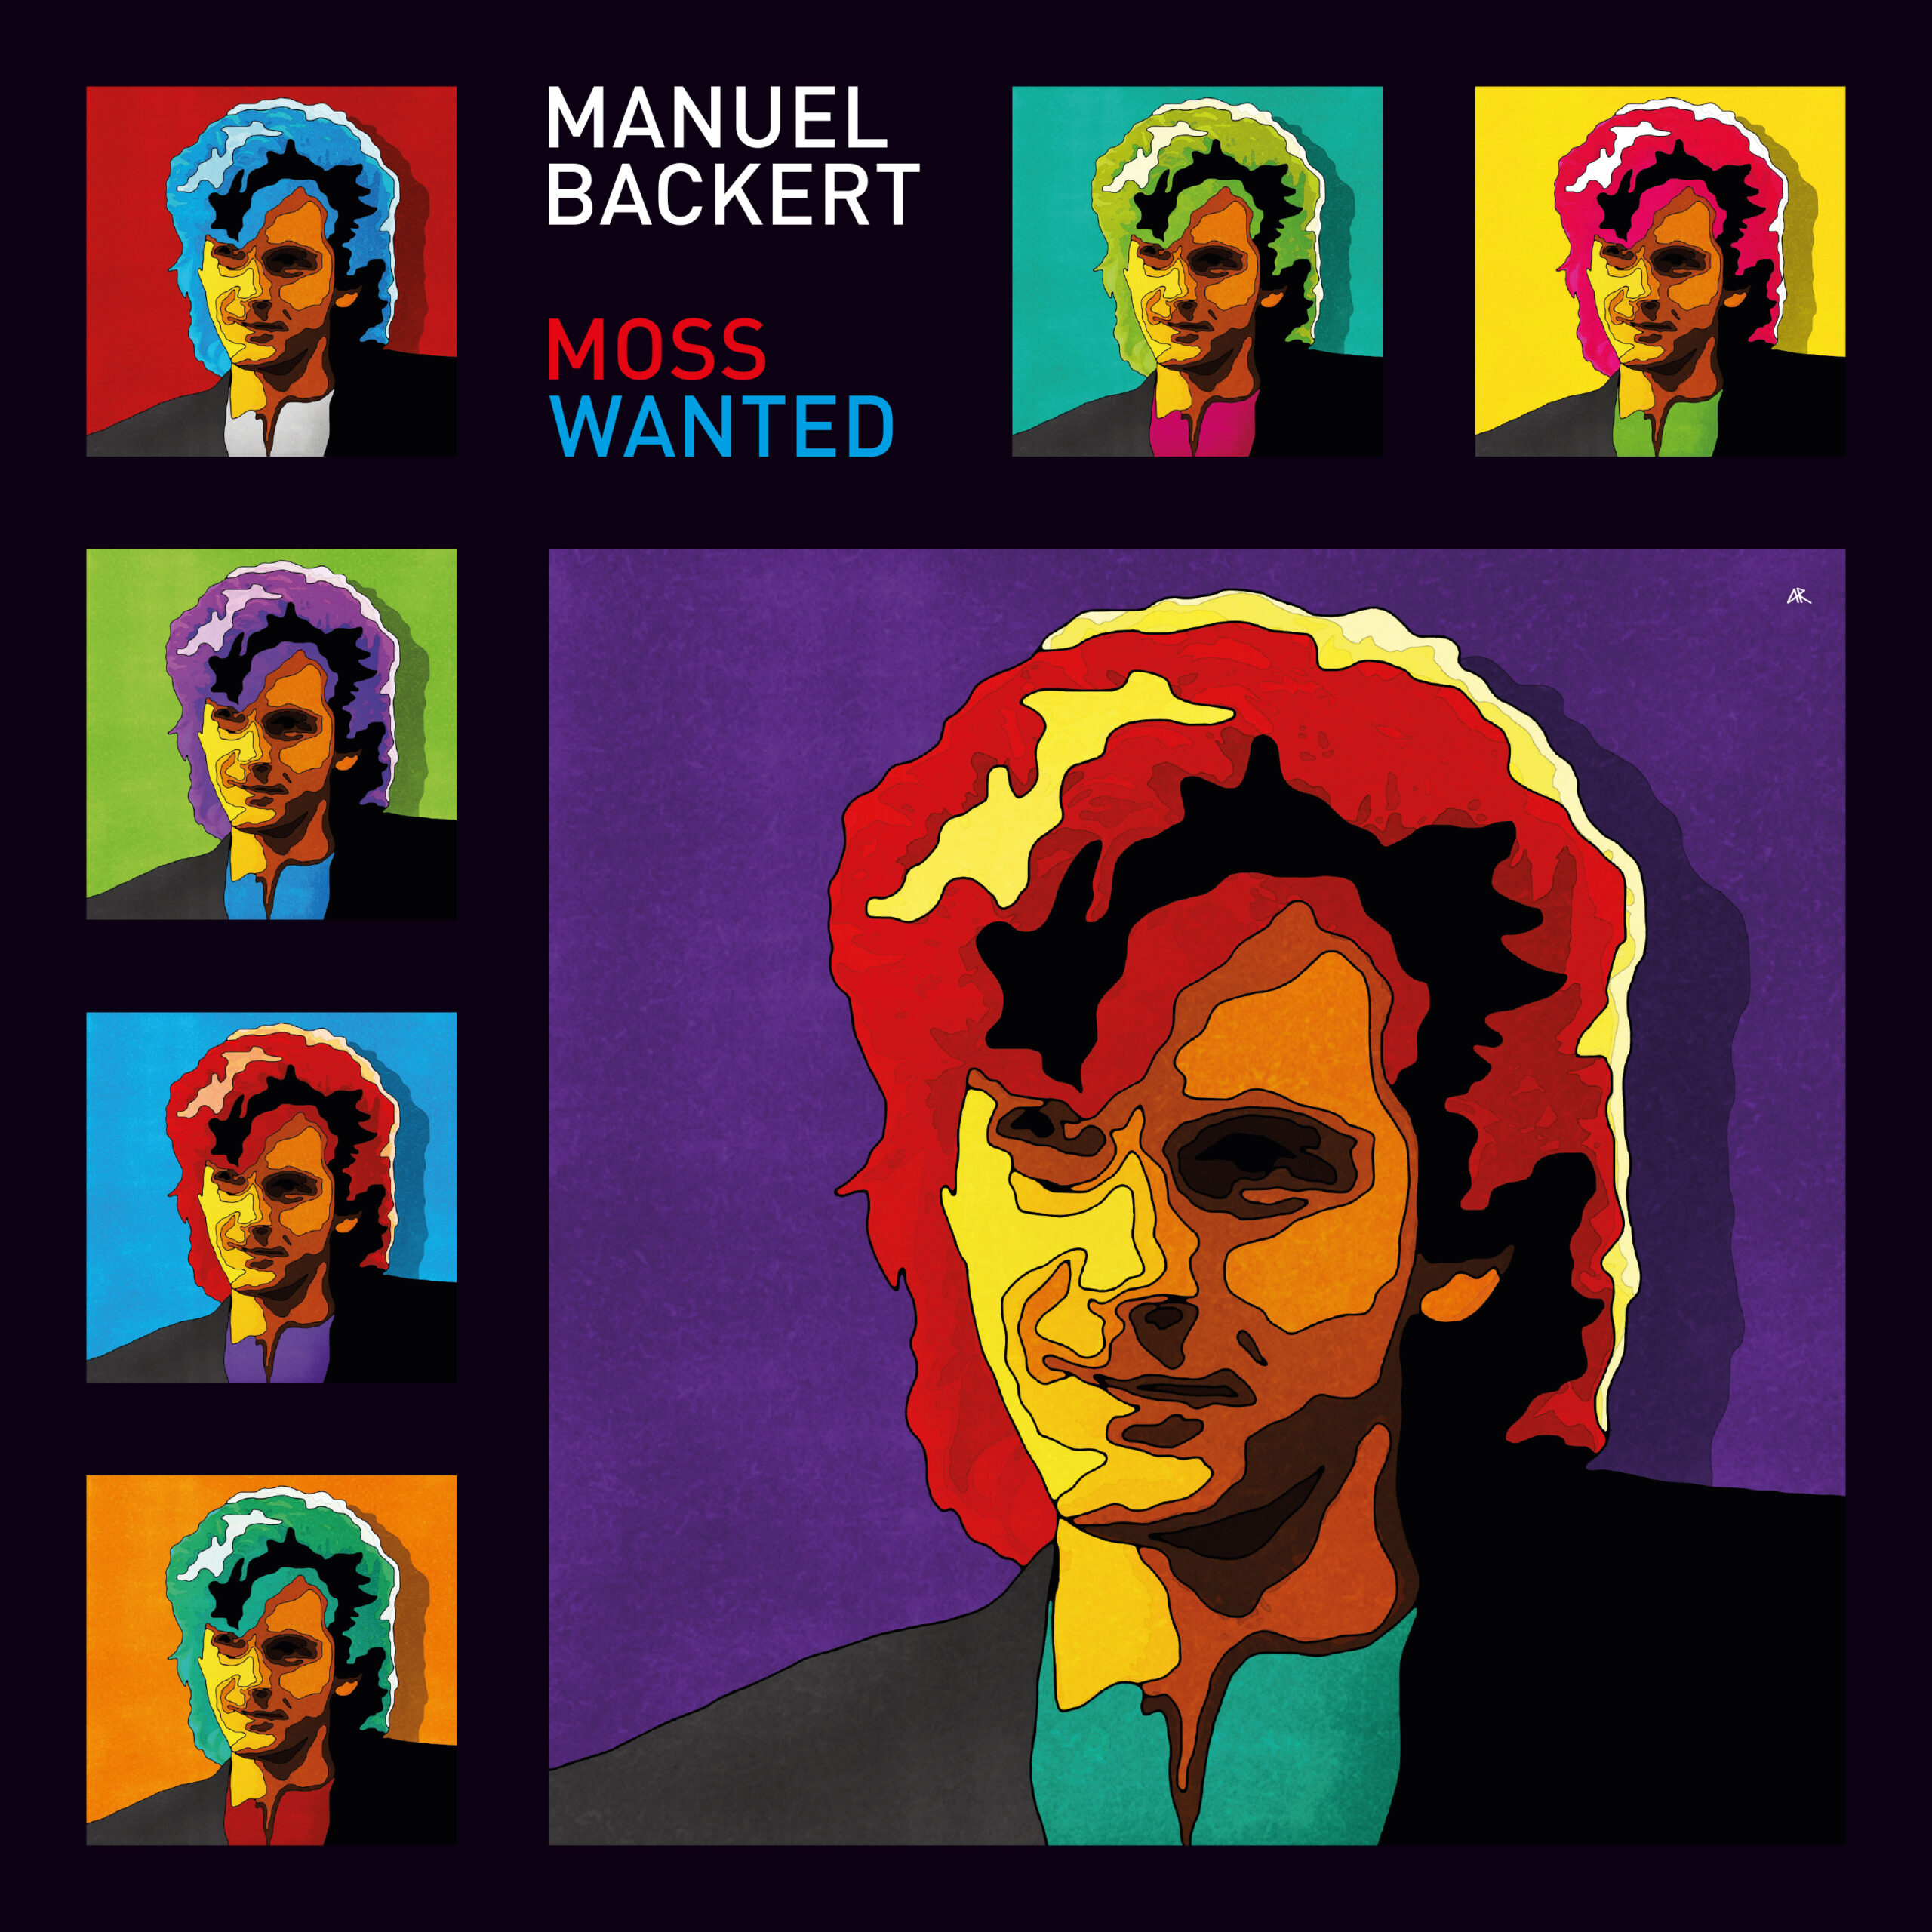 Manuel_Backert_MOSS_WANTED_Cover_3000x3000px_Front-scaled.jpg